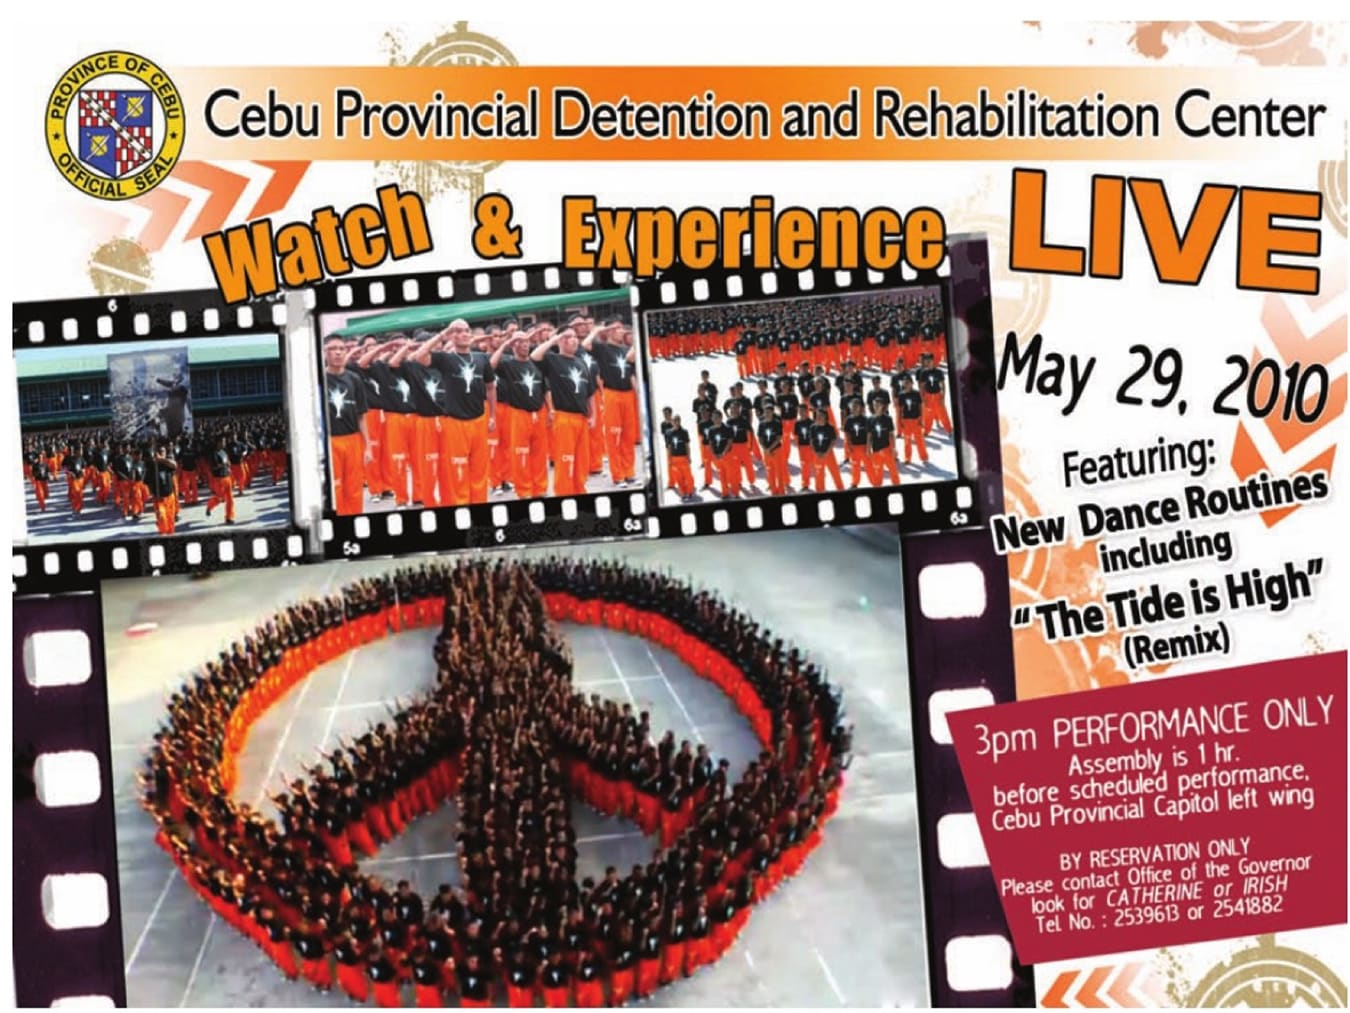 Poster produced by Cebu Provincial Capitol advertising the CPDRC Dancing Inmates 'LIVE' performance on 29 May 2010.